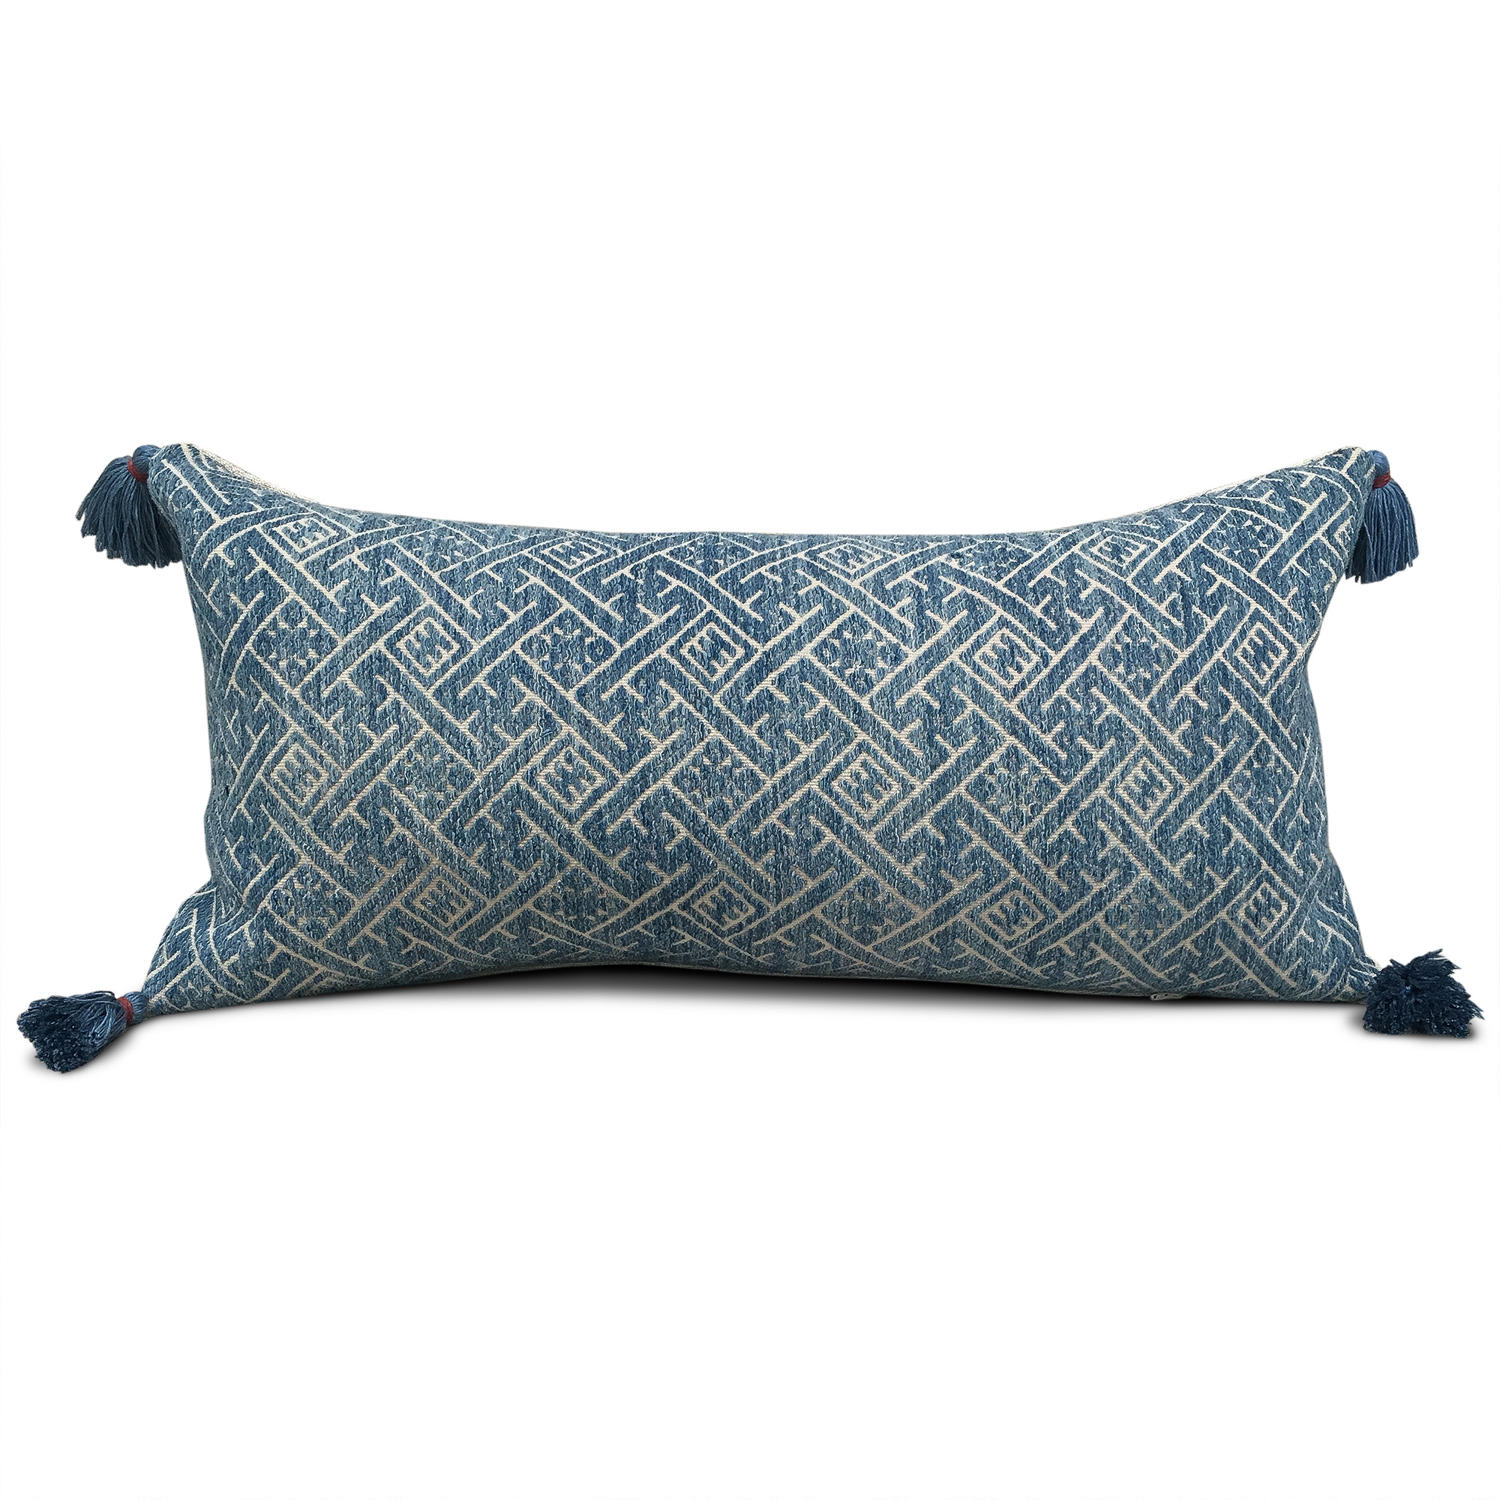 Blue Zhuang Cushions with Blue Tassels